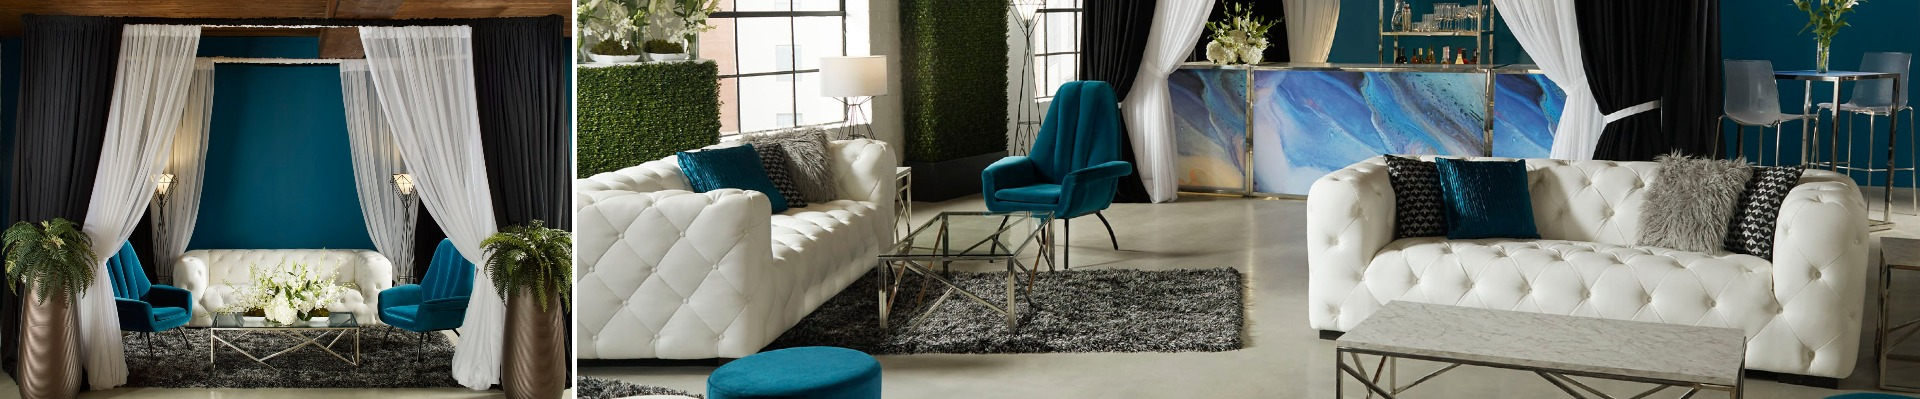 lounge with white and teal furniture